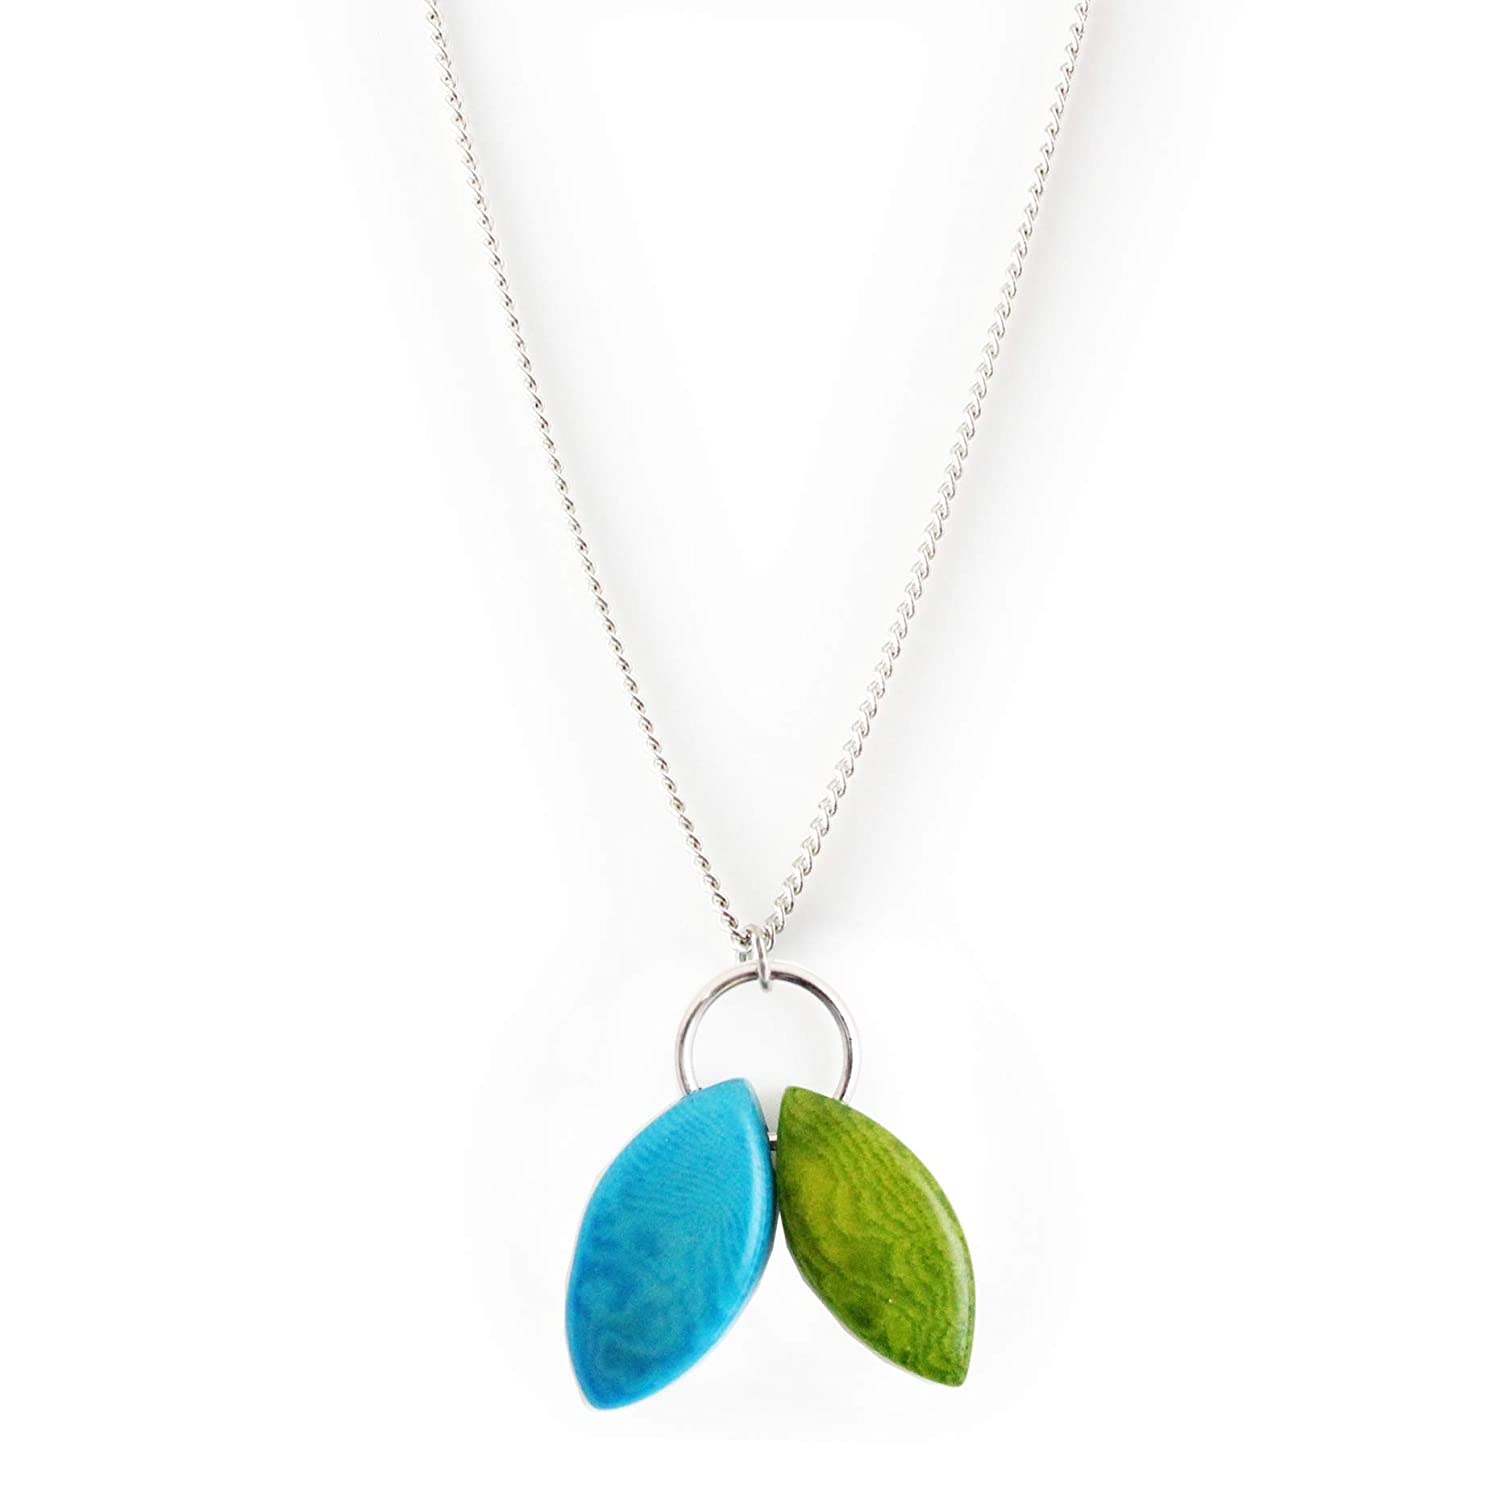 Leaves Tagua Nut Pendant Necklace and Blue in Handmade Green New product Be super welcome type